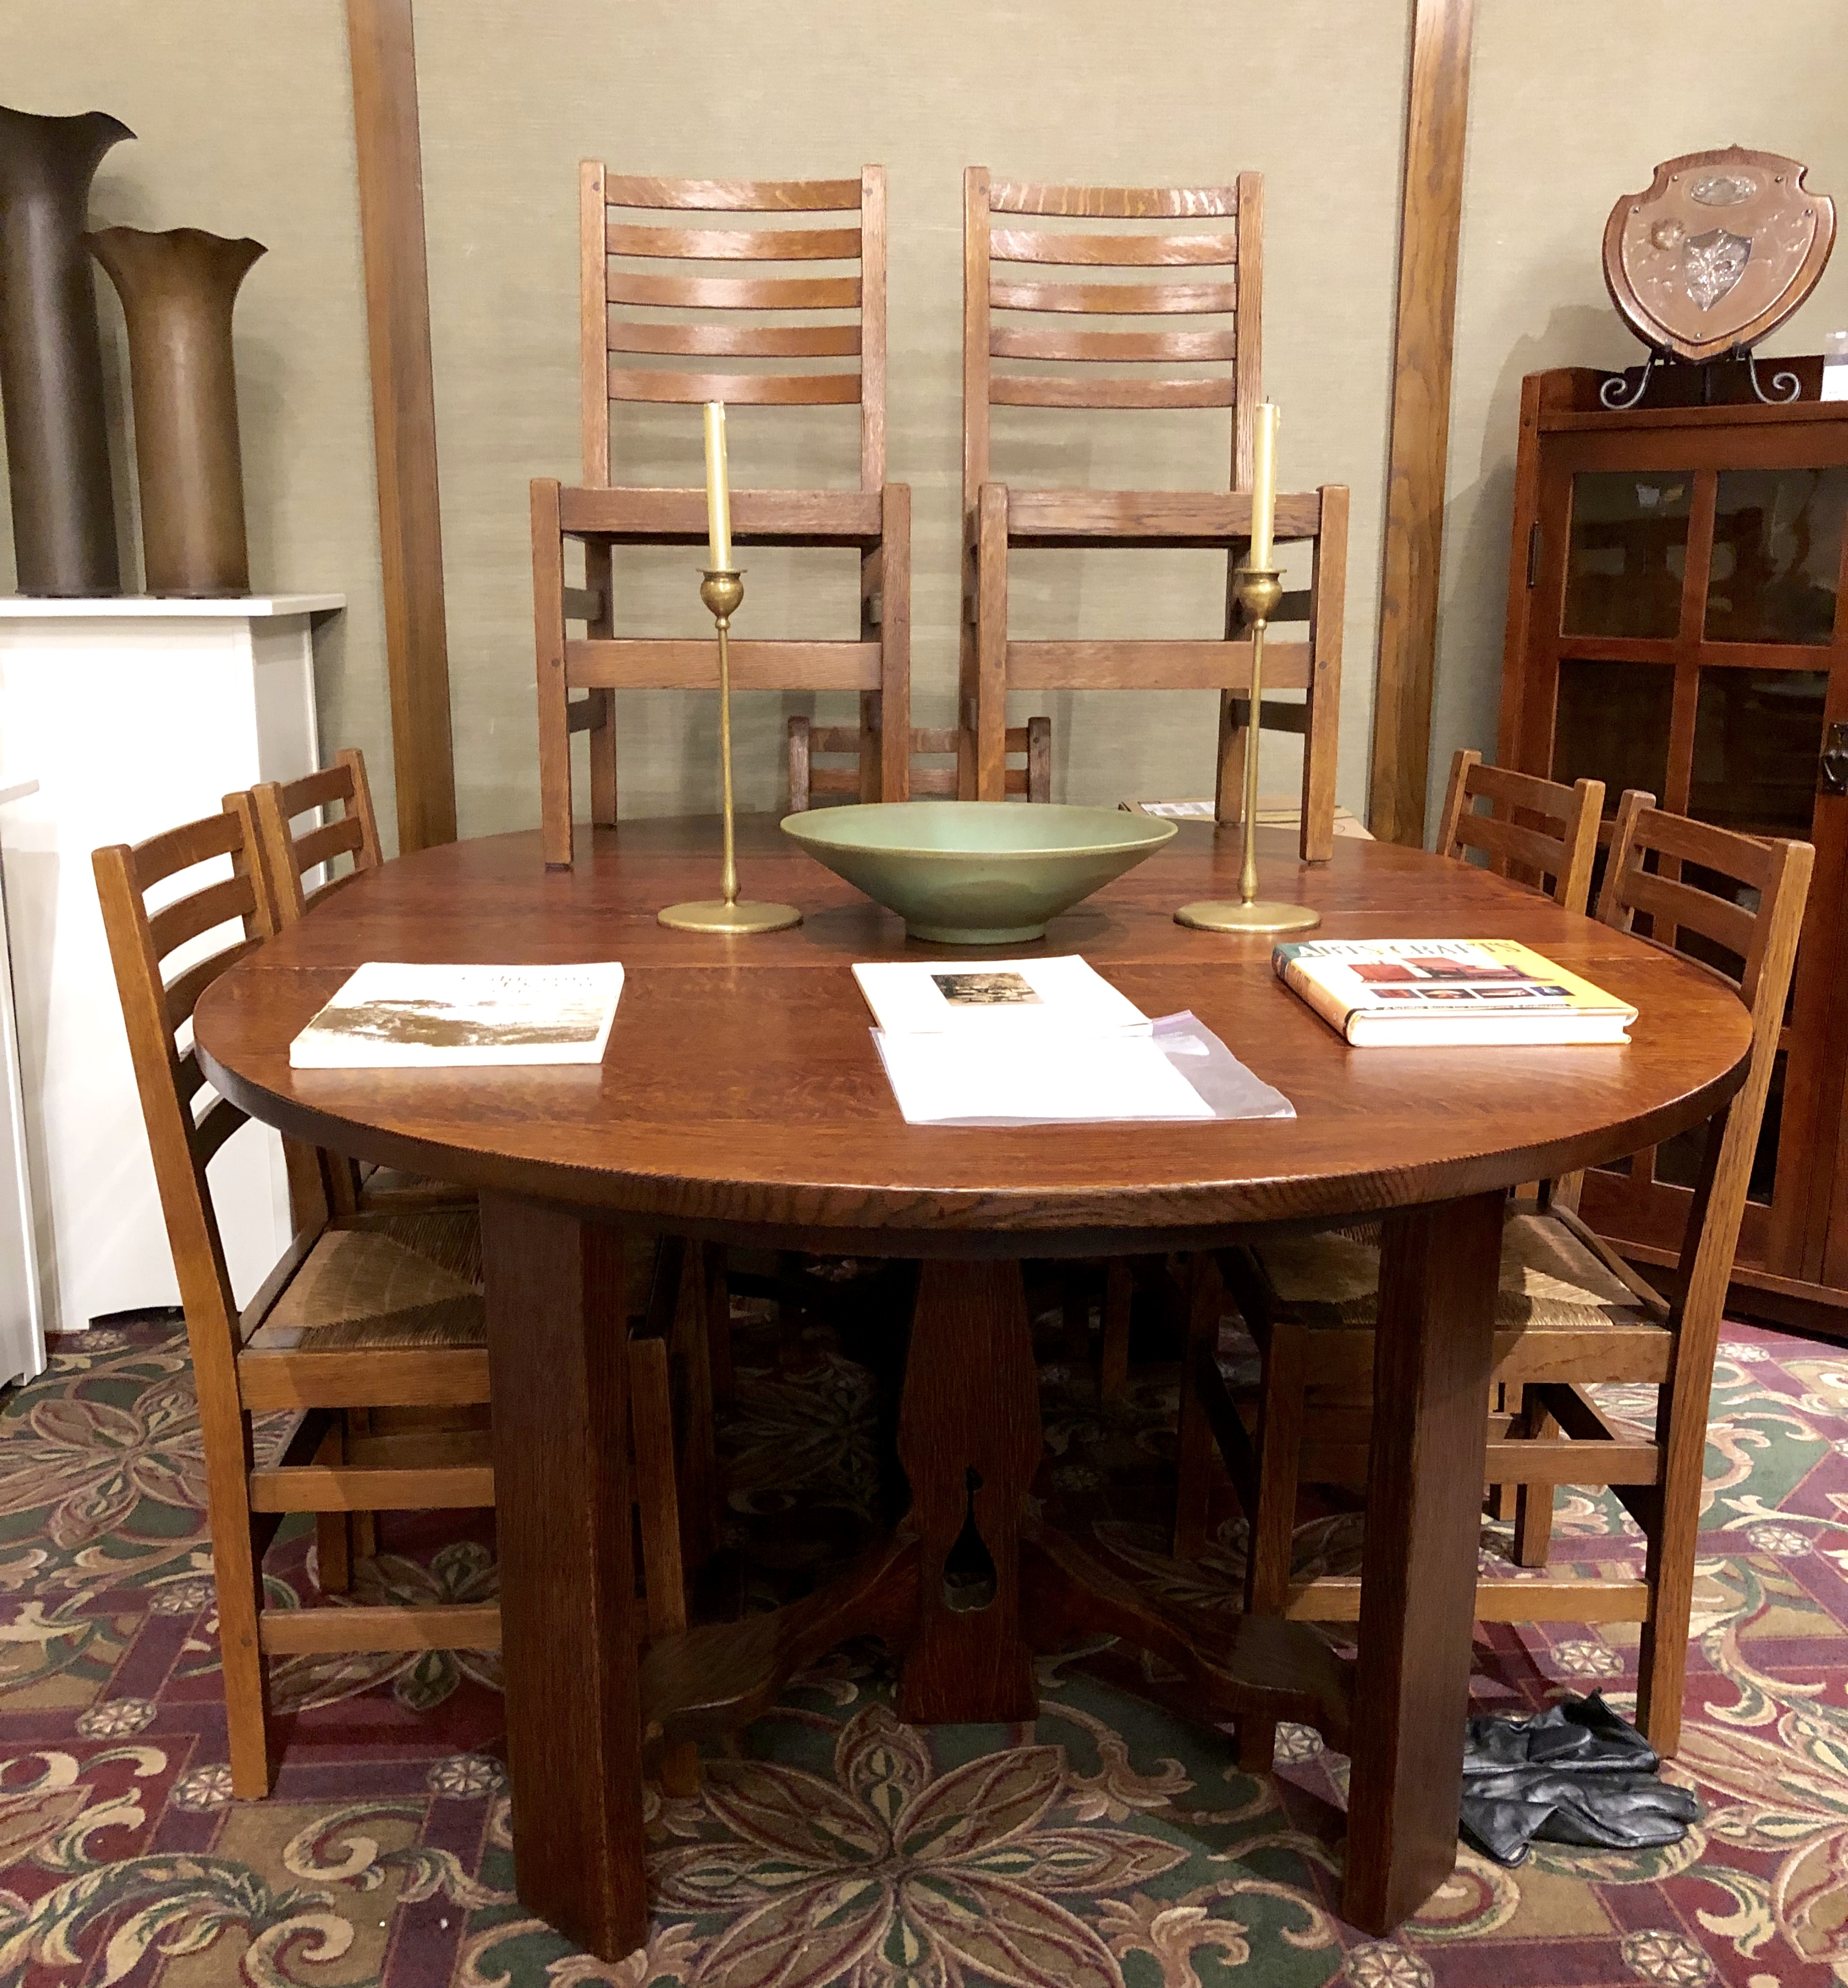 Stickley Dining Room Furniture: L&JG STICKLEY SET OF 8 DINING ROOM CHAIRS